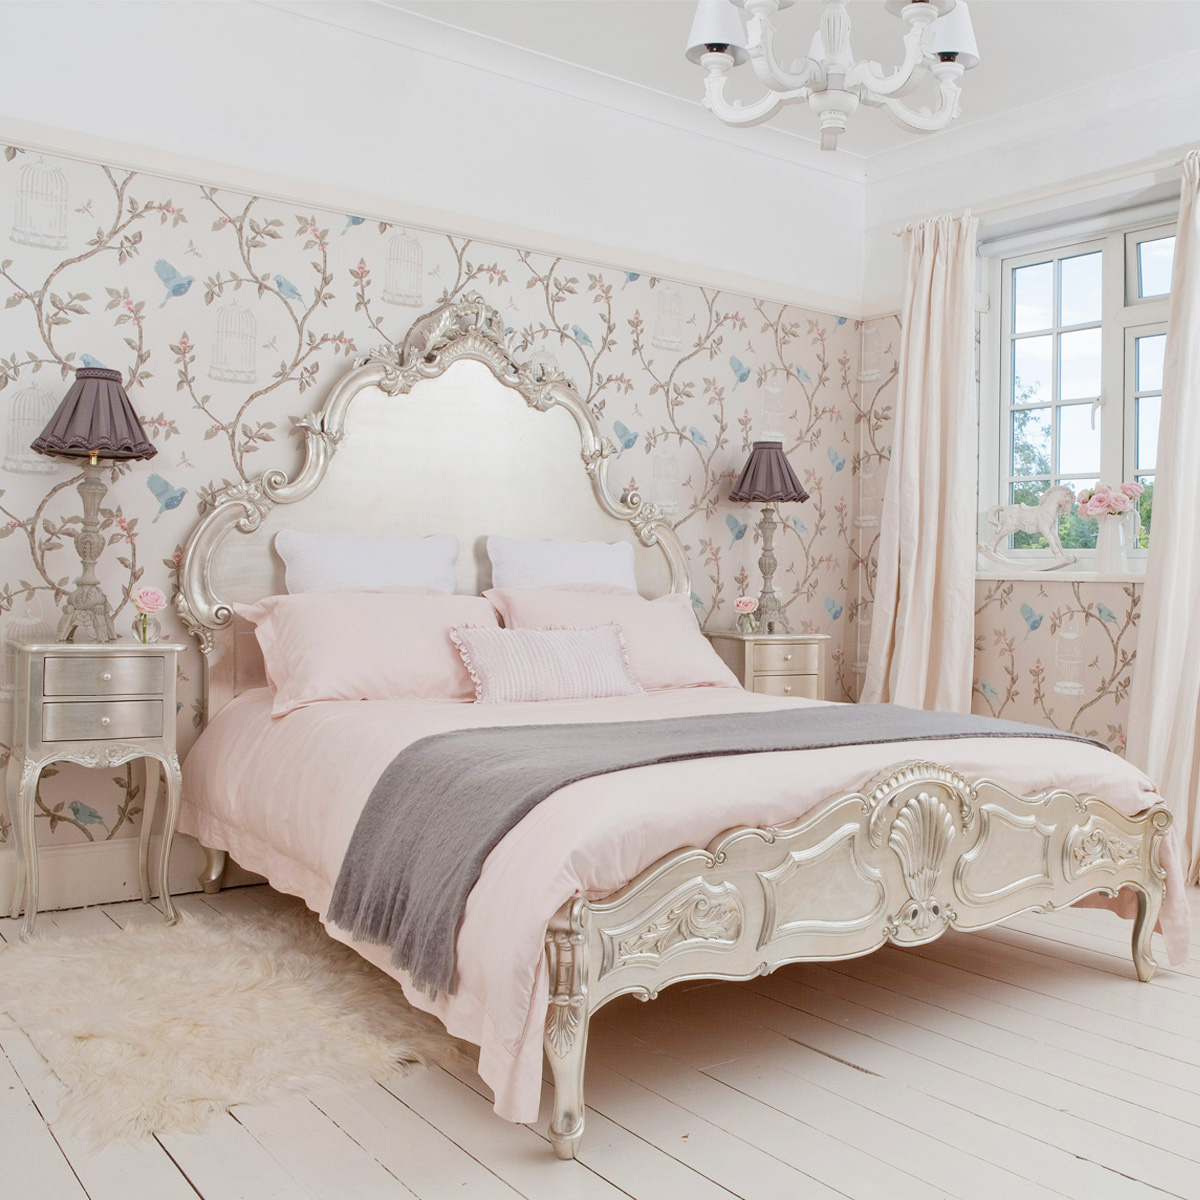 Luxury French Bedroom Furniture - The French Bedroom Company